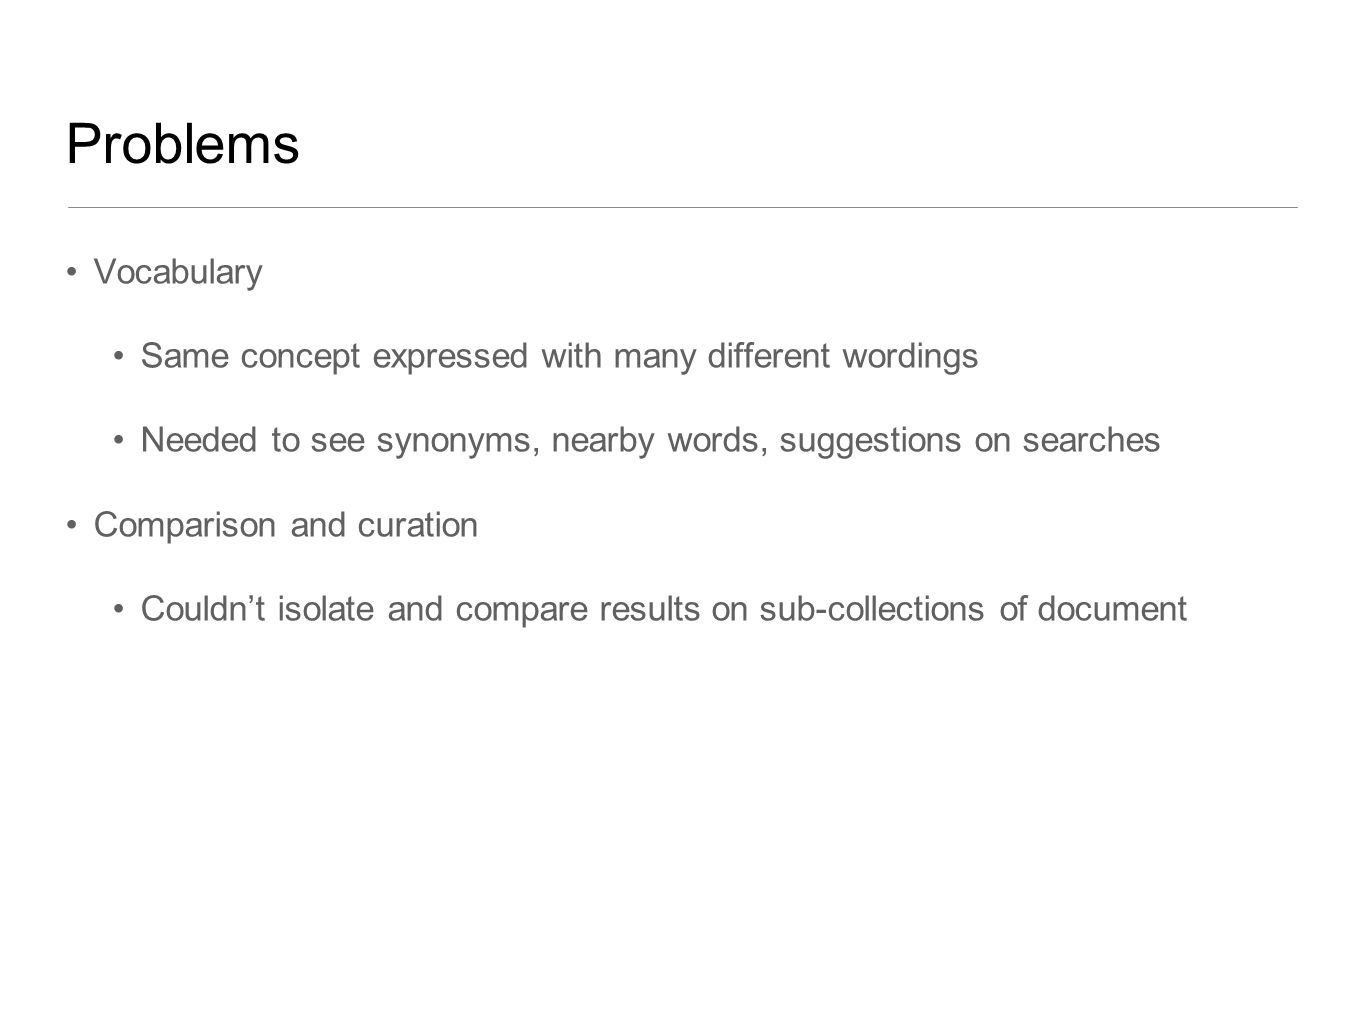 Problems Vocabulary Same concept expressed with many different wordings Needed to see synonyms, nearby words, suggestions on searches Comparison and curation Couldn't isolate and compare results on sub-collections of document